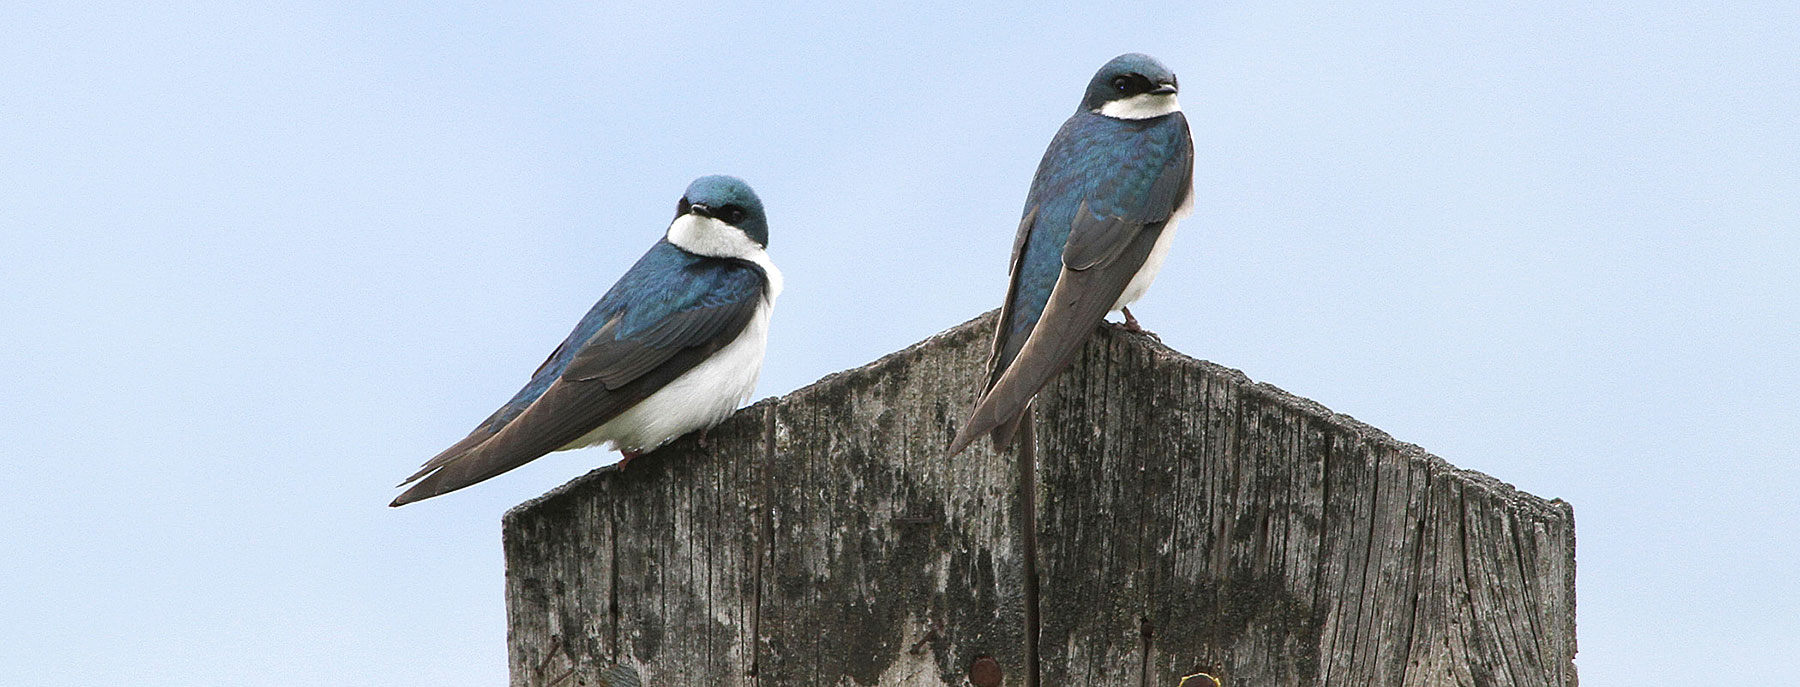 swallows and martins oregon department of fish wildlife